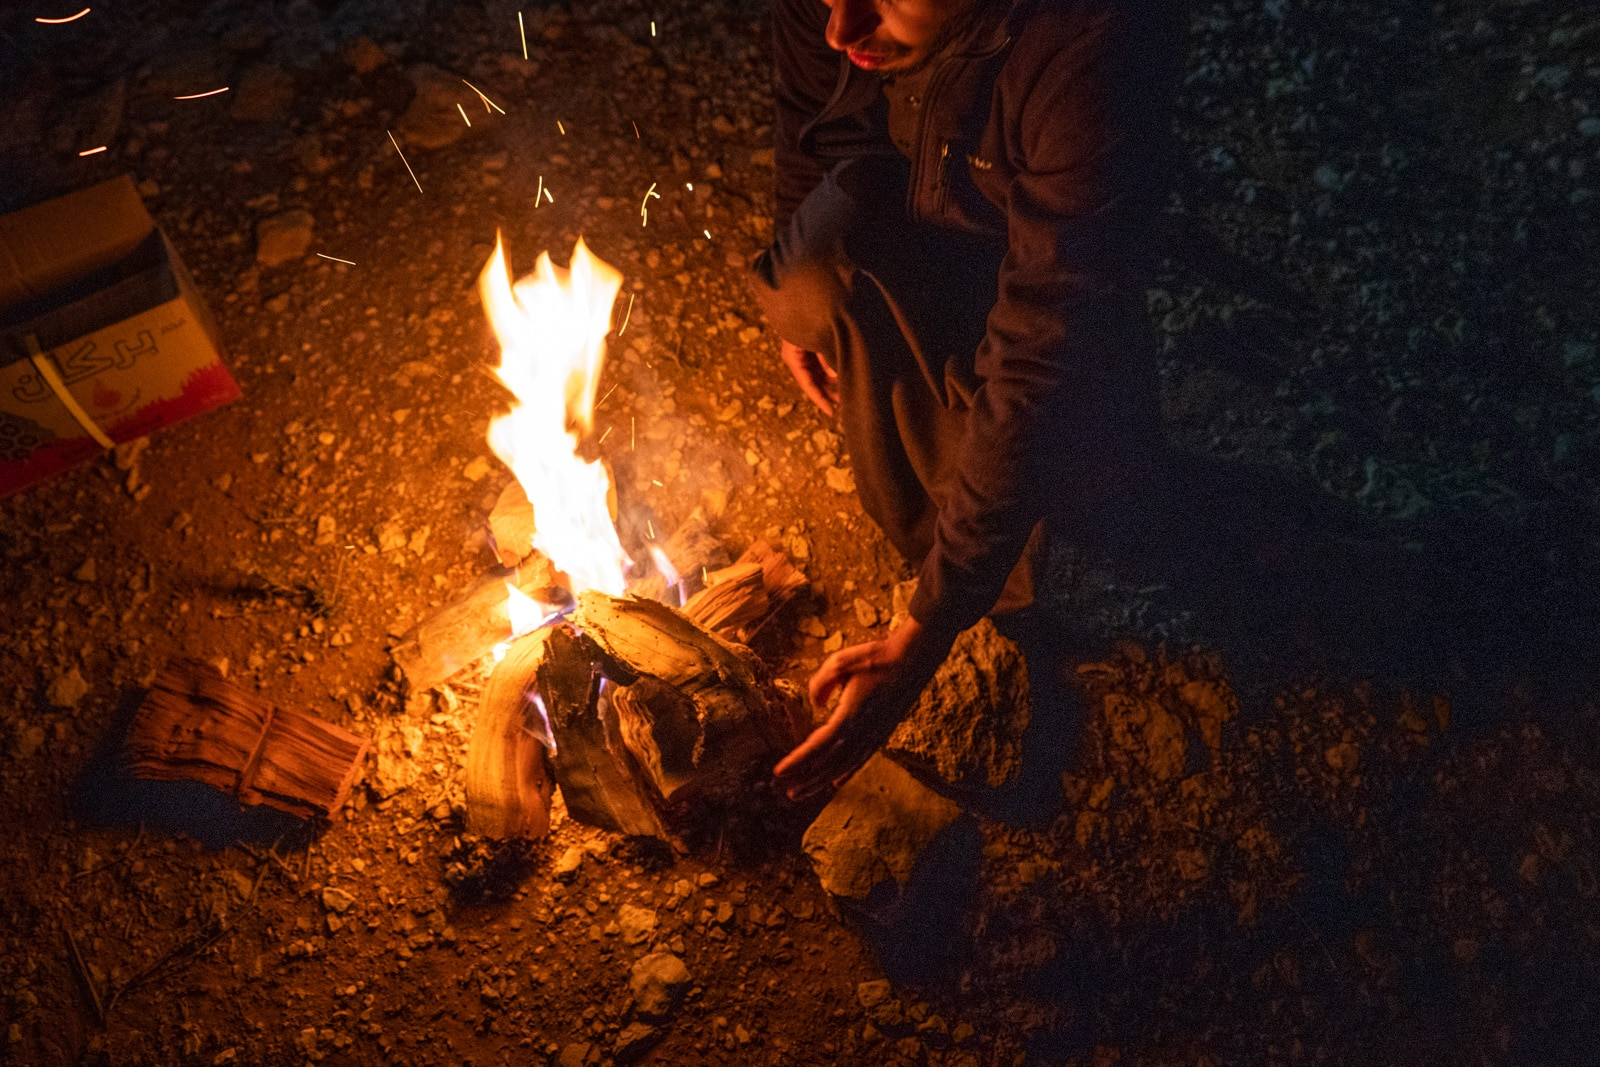 Saudi man making a campfire near Riyadh, Saudi Arabia